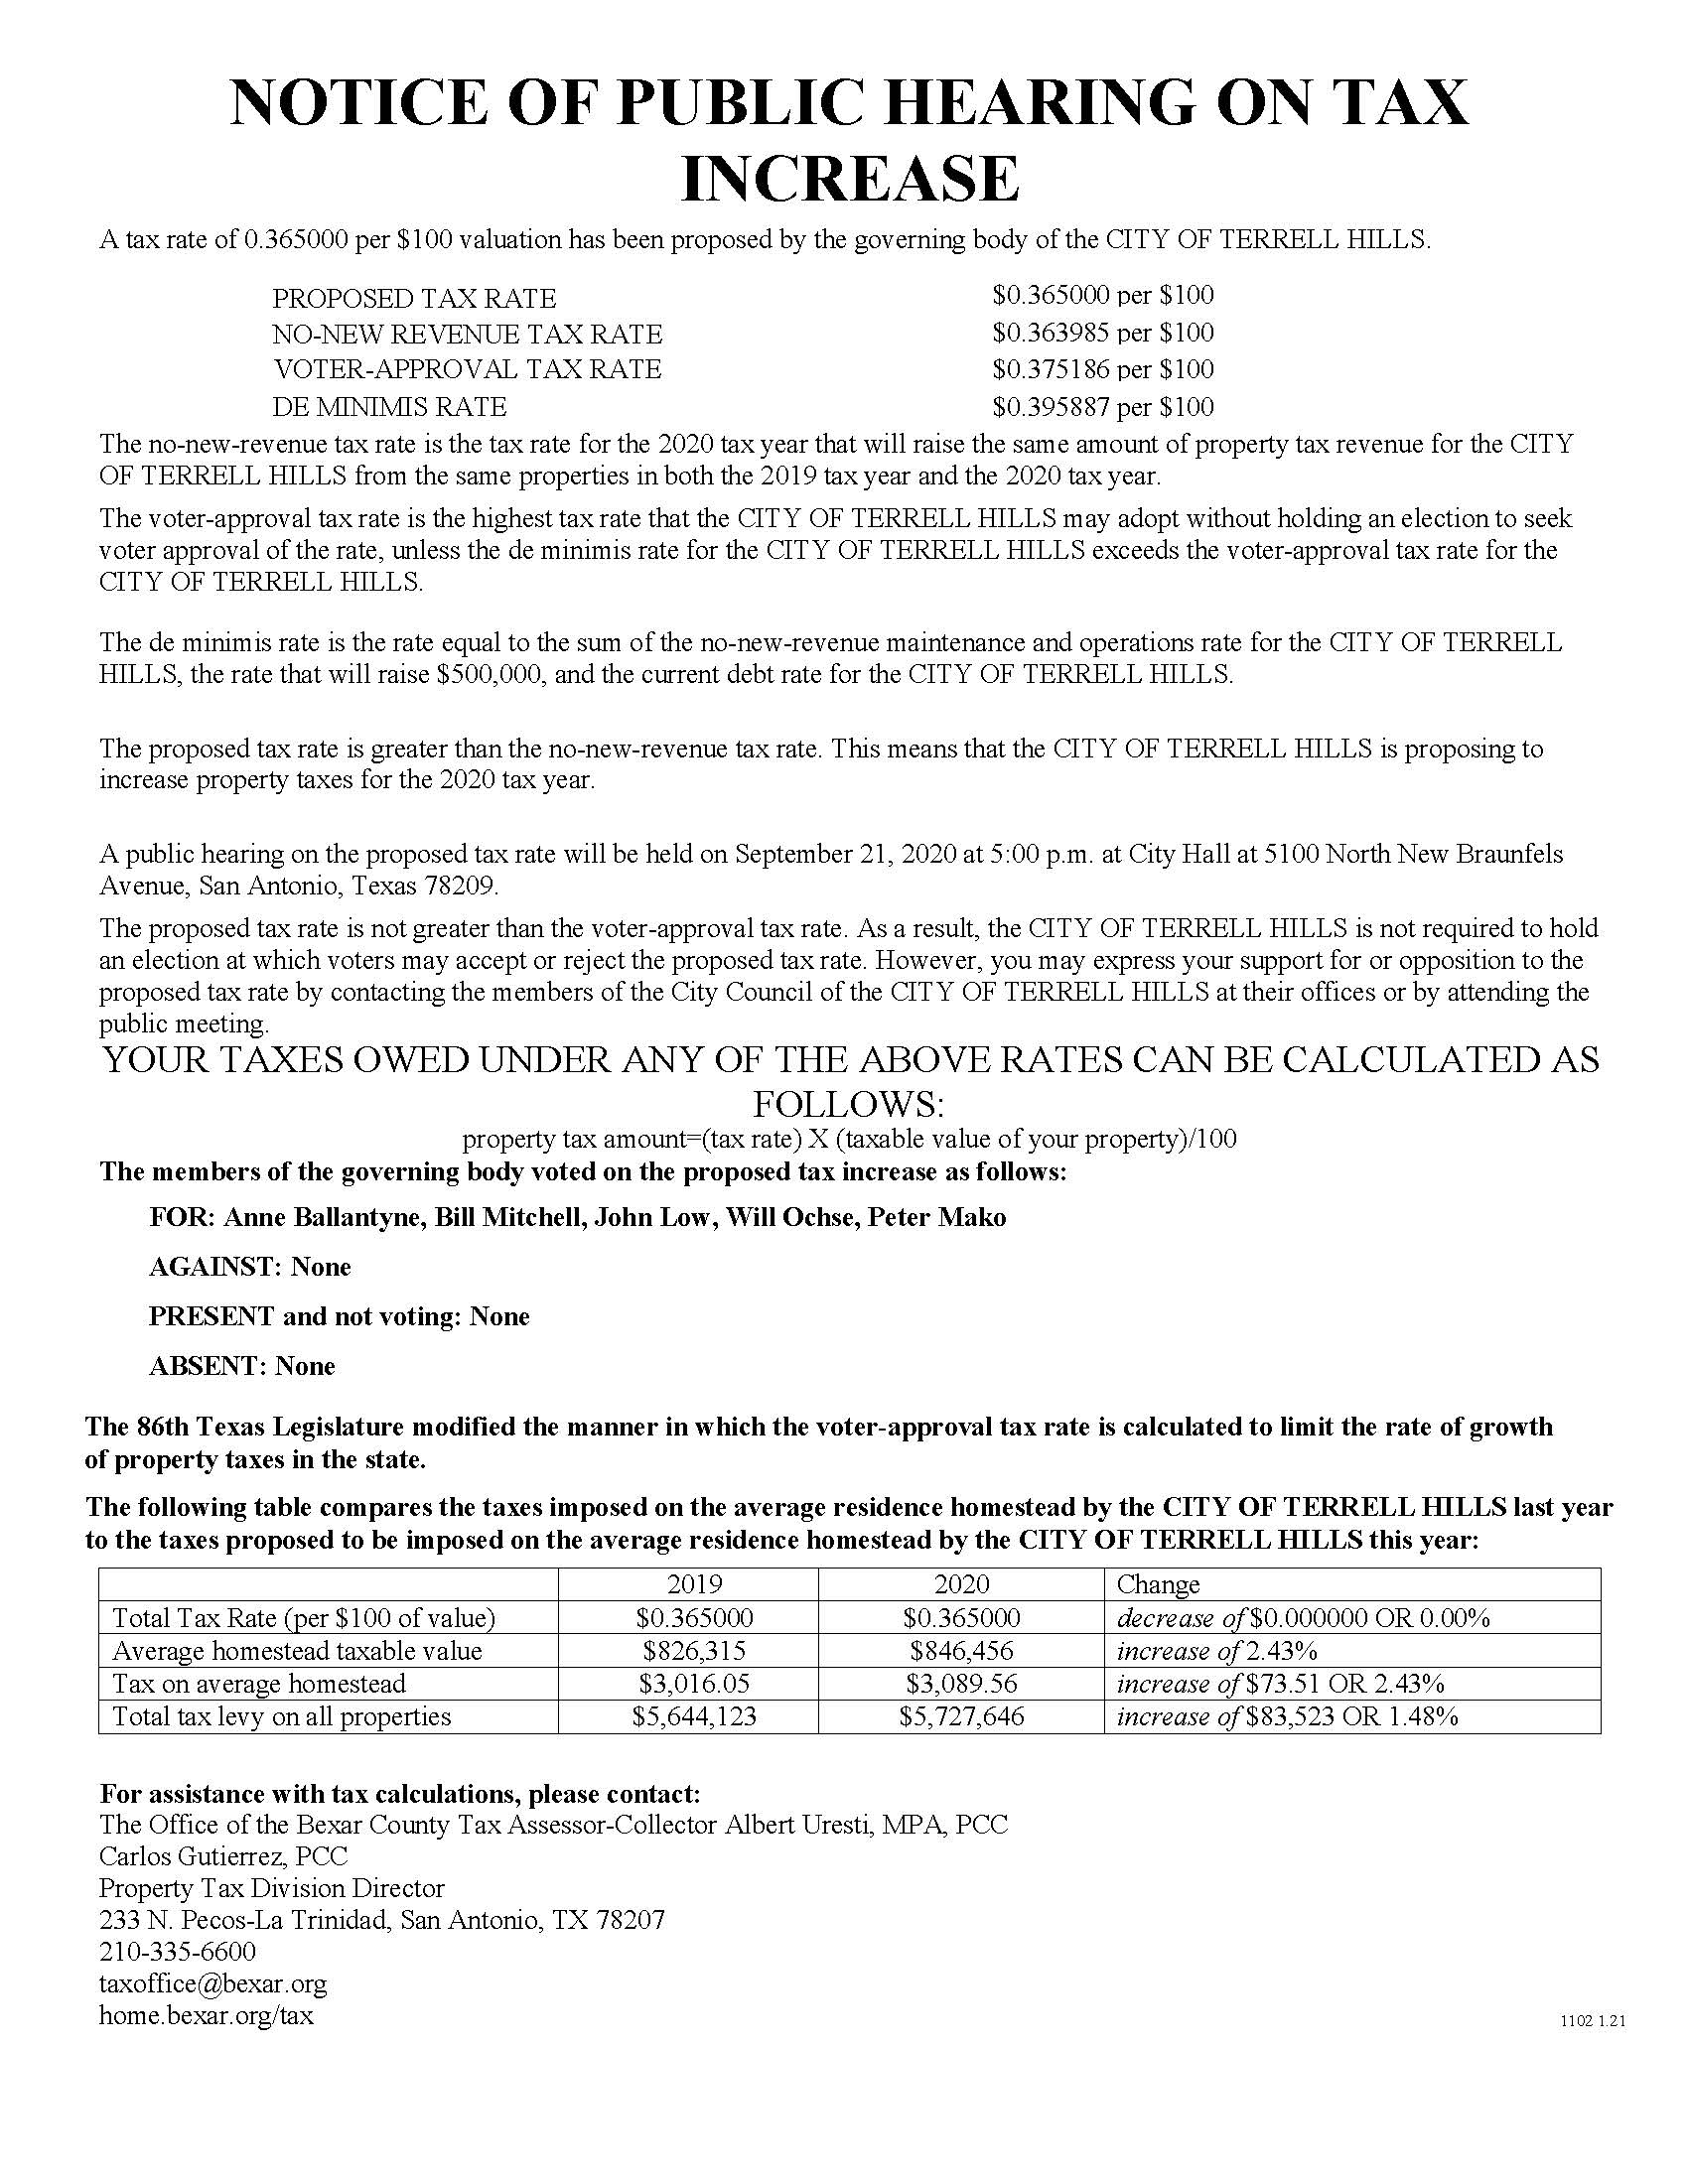 Notice of Public Hearing Tax Rate